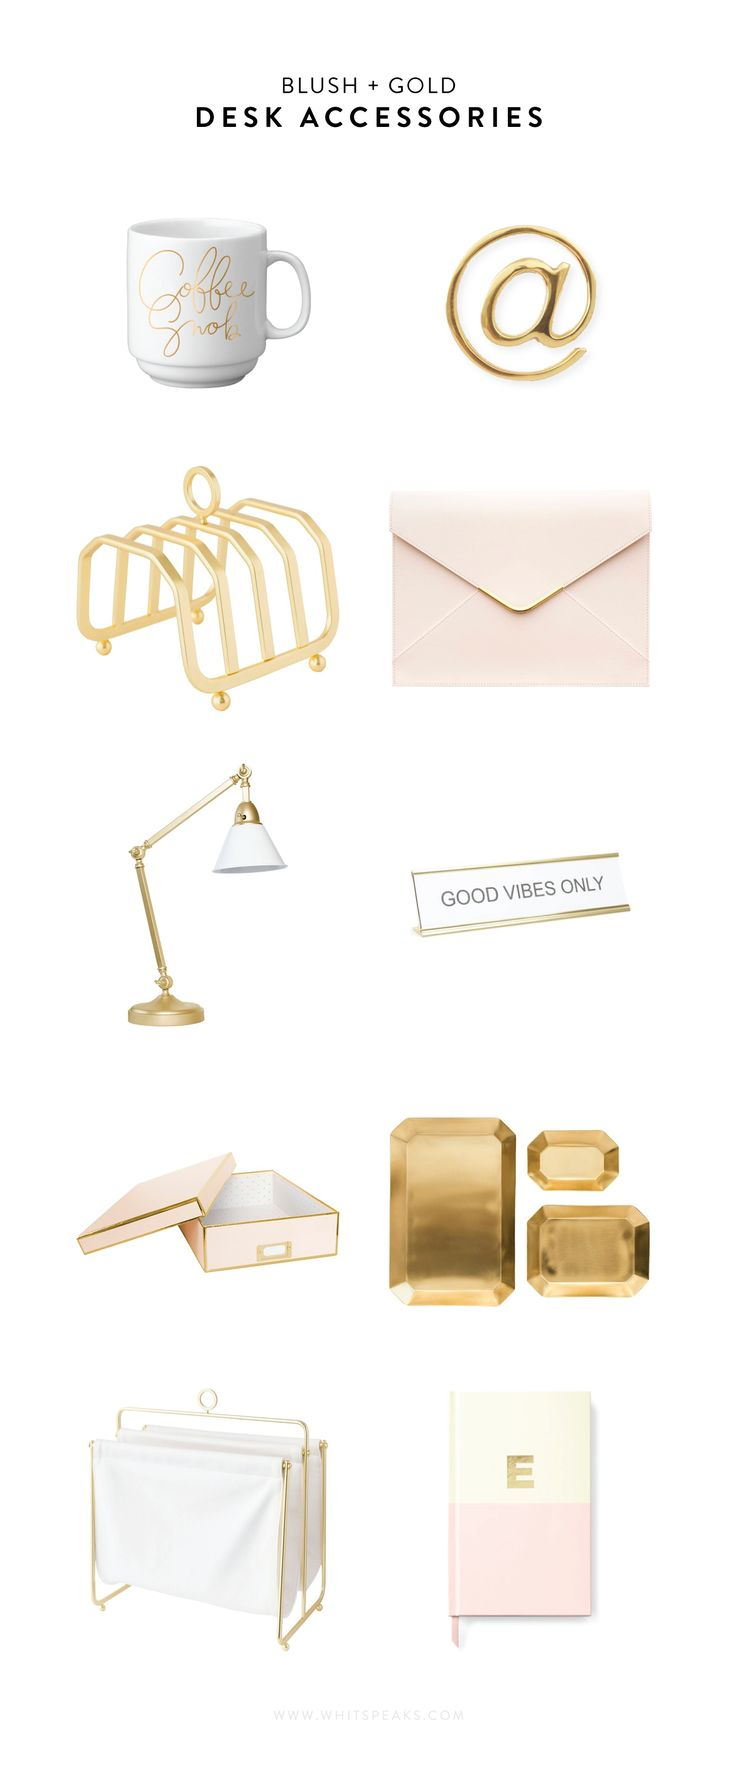 best  modern desk accessories ideas on pinterest  office desk  - a roundup of modern blush and gold desk accessories you just can't go